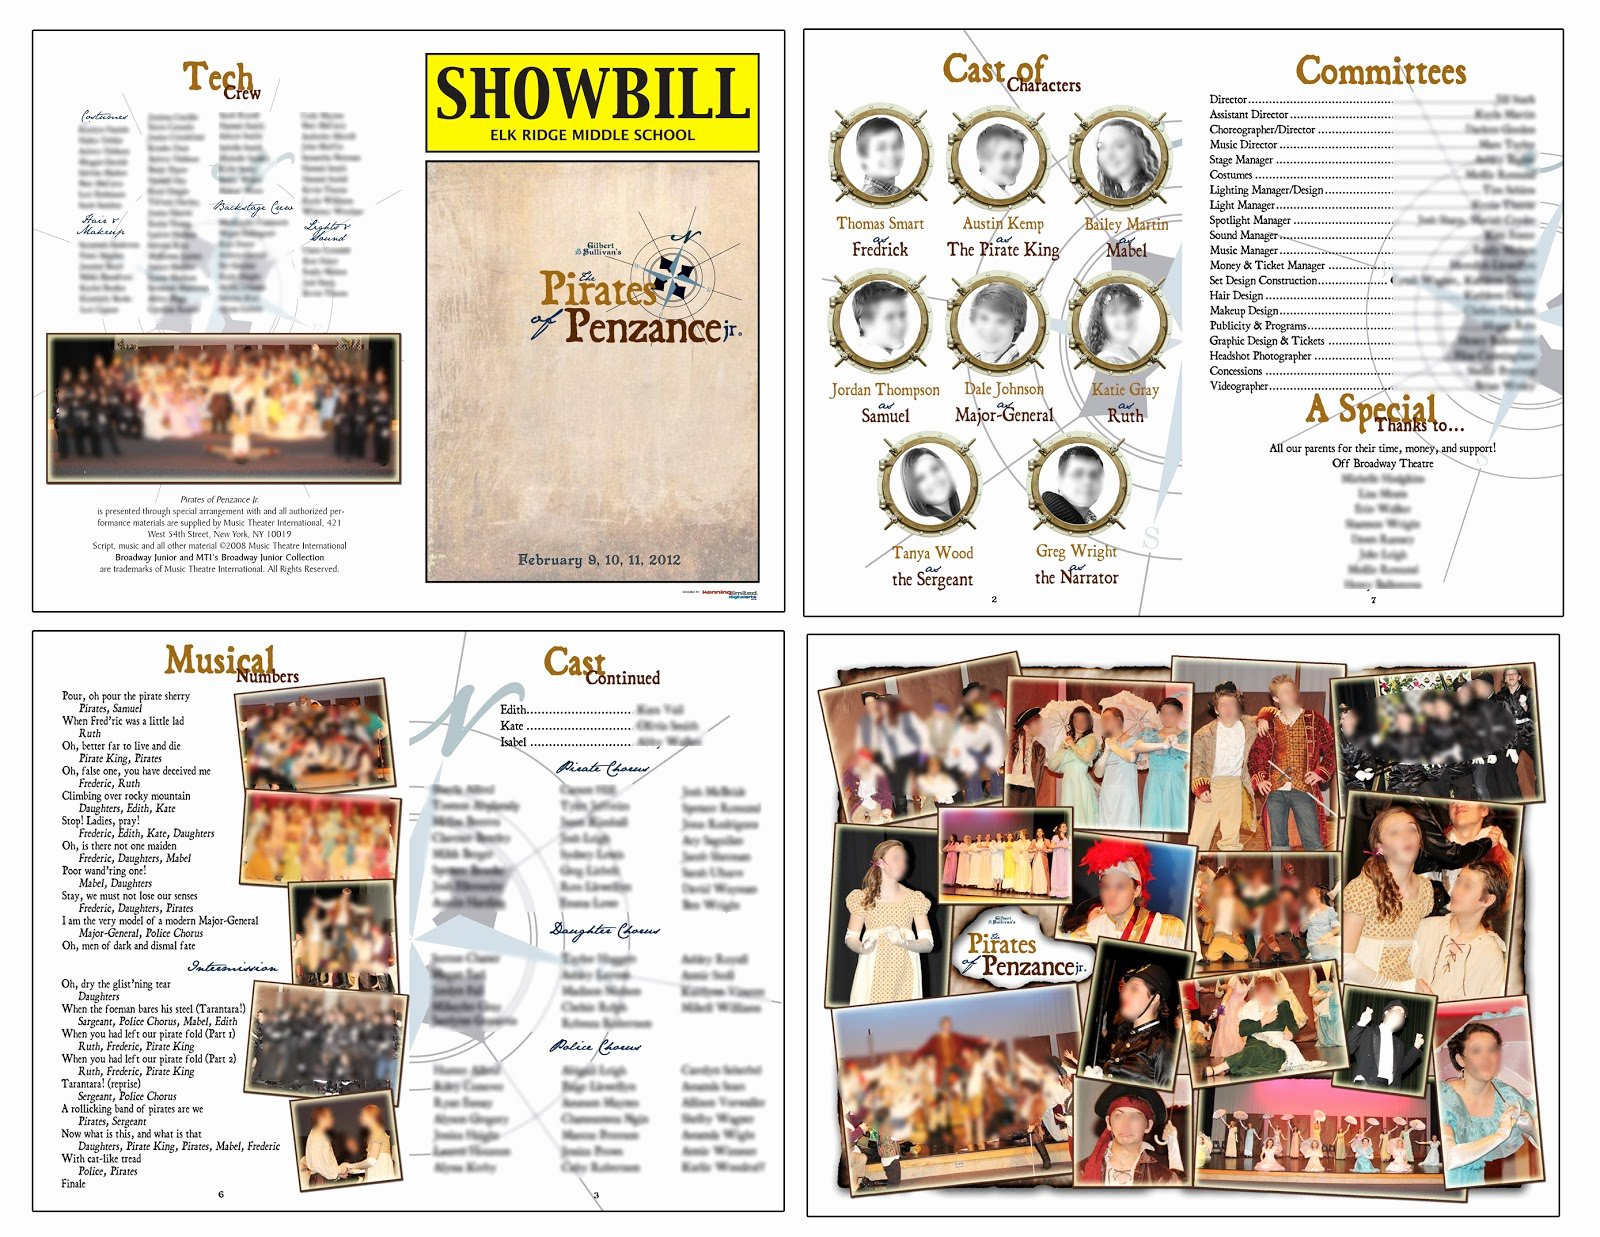 Theatre Program Template Awesome theater Production Program Template Free Filehydro